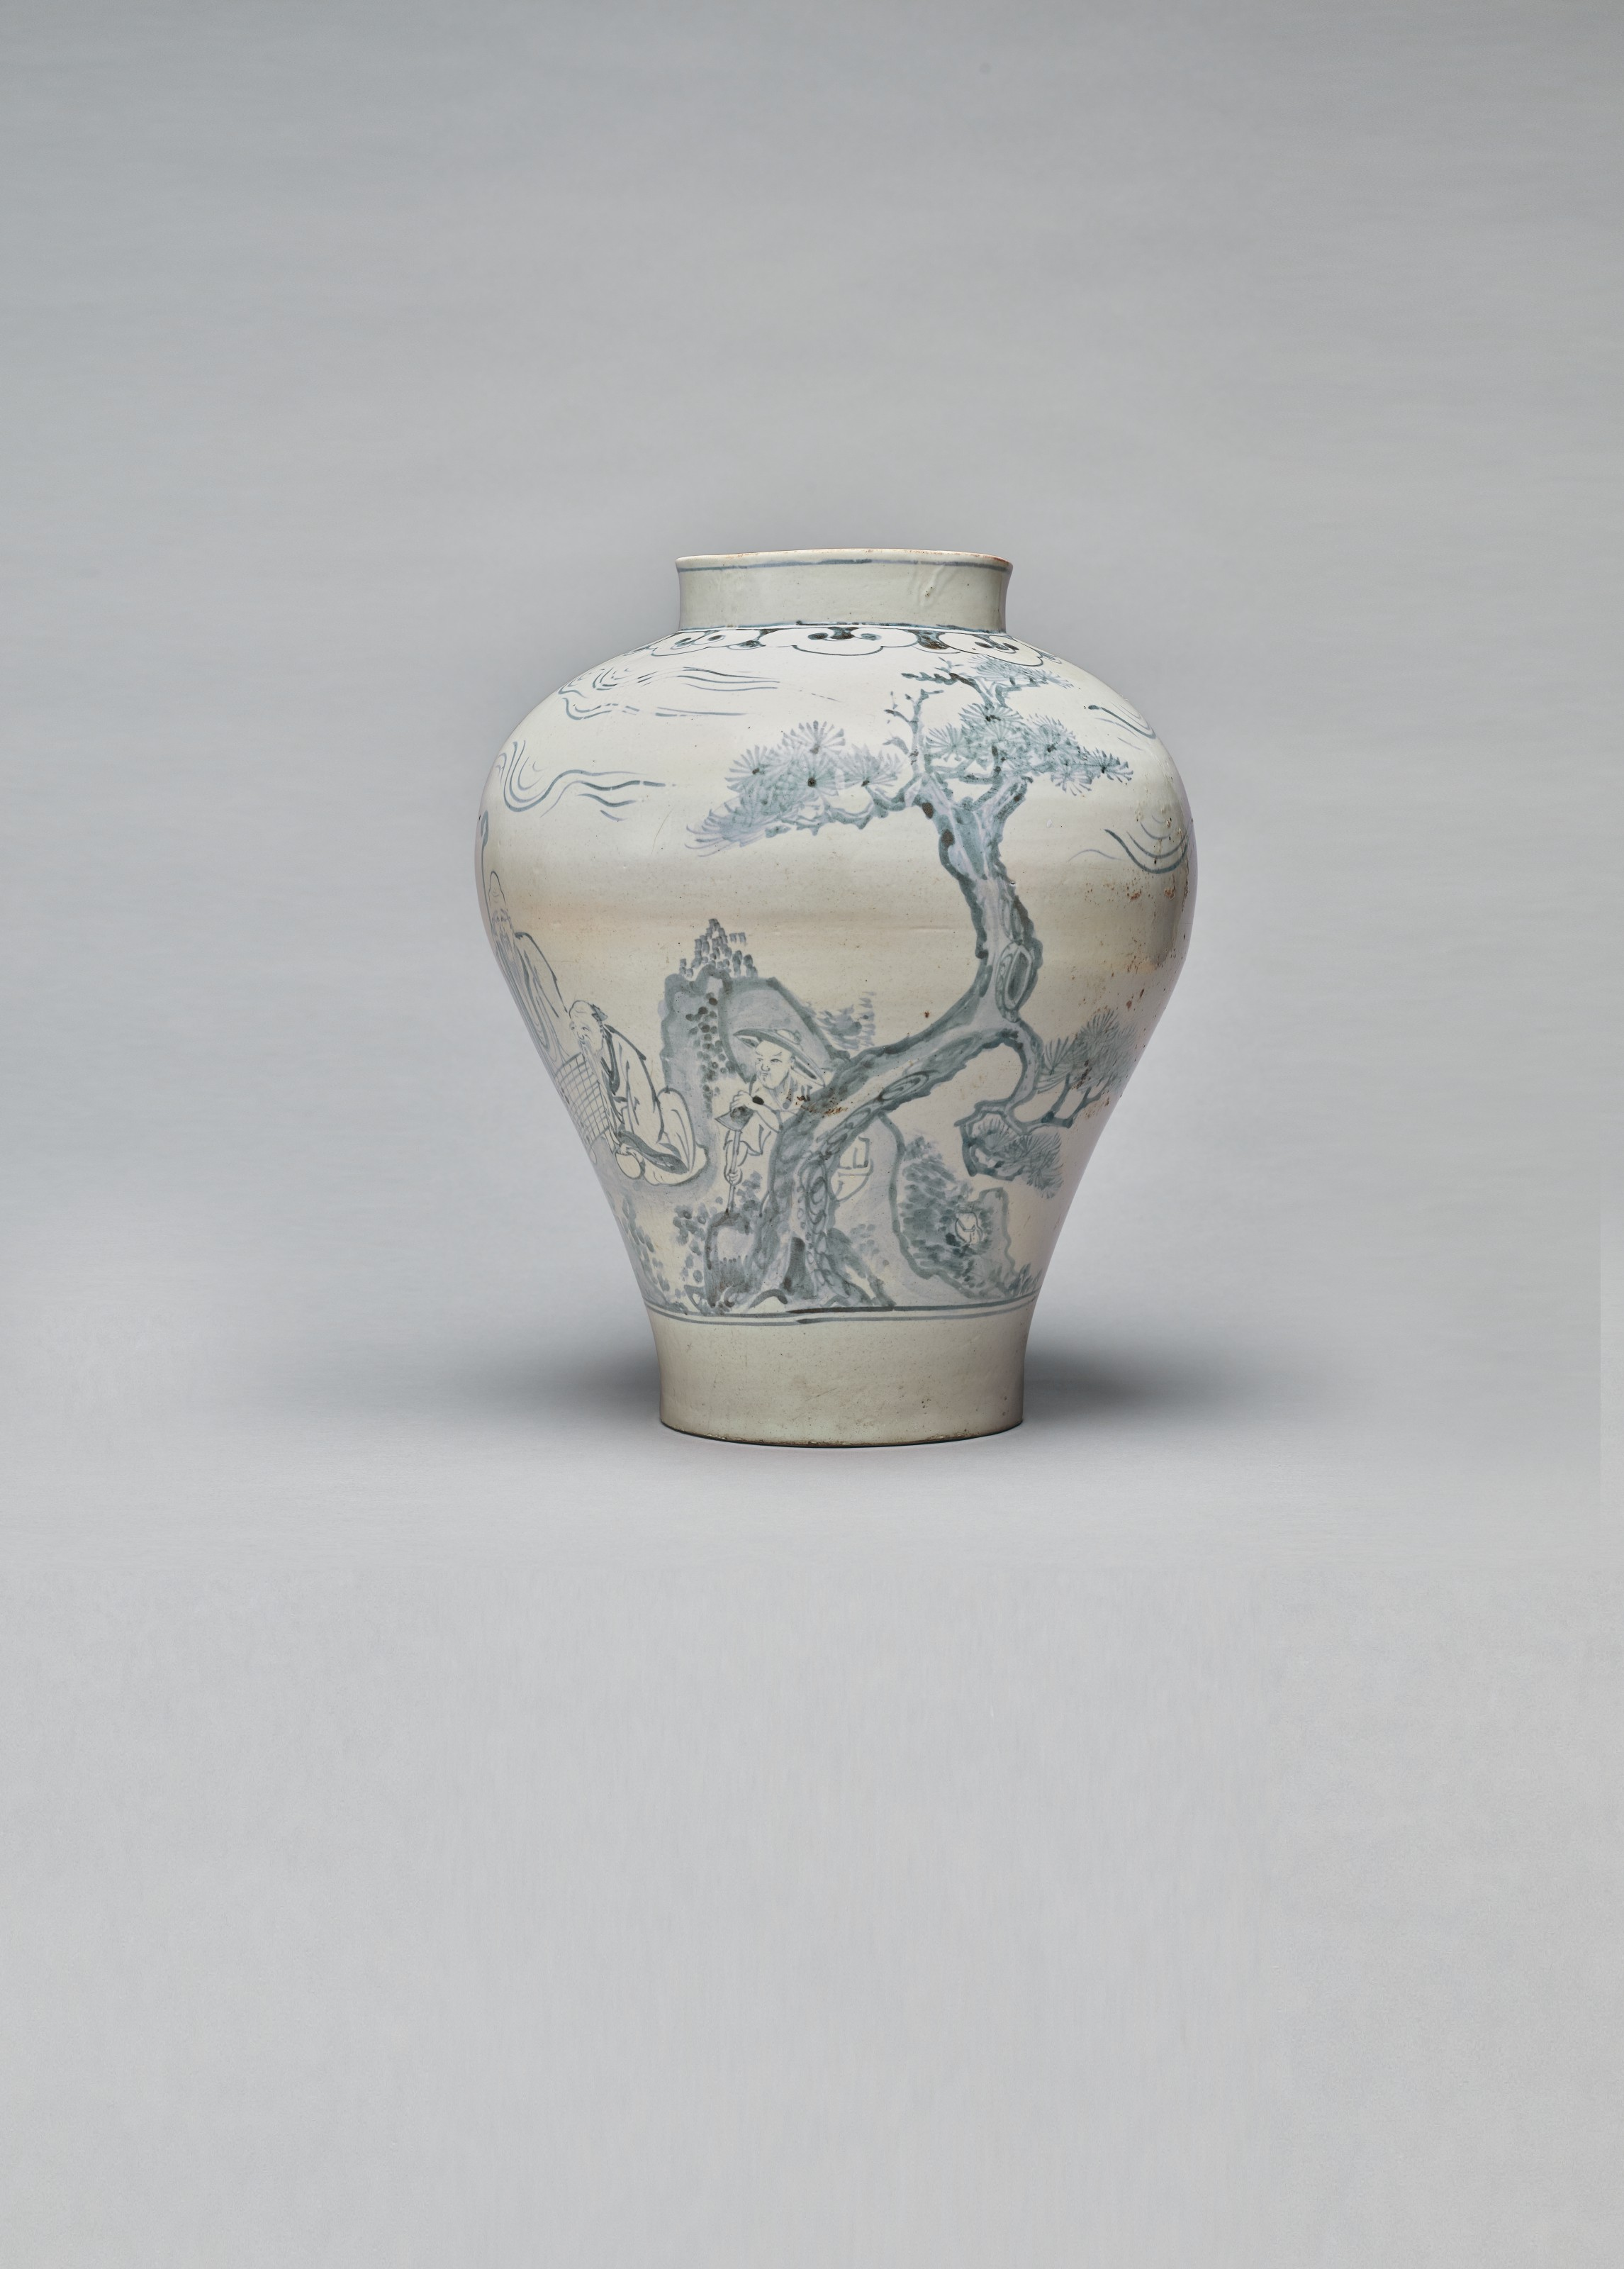 2020_NYR_19017_0251_003(a_blue_and_white_porcelain_jar_with_three_worthies_playing_weiqi_joseo035300)